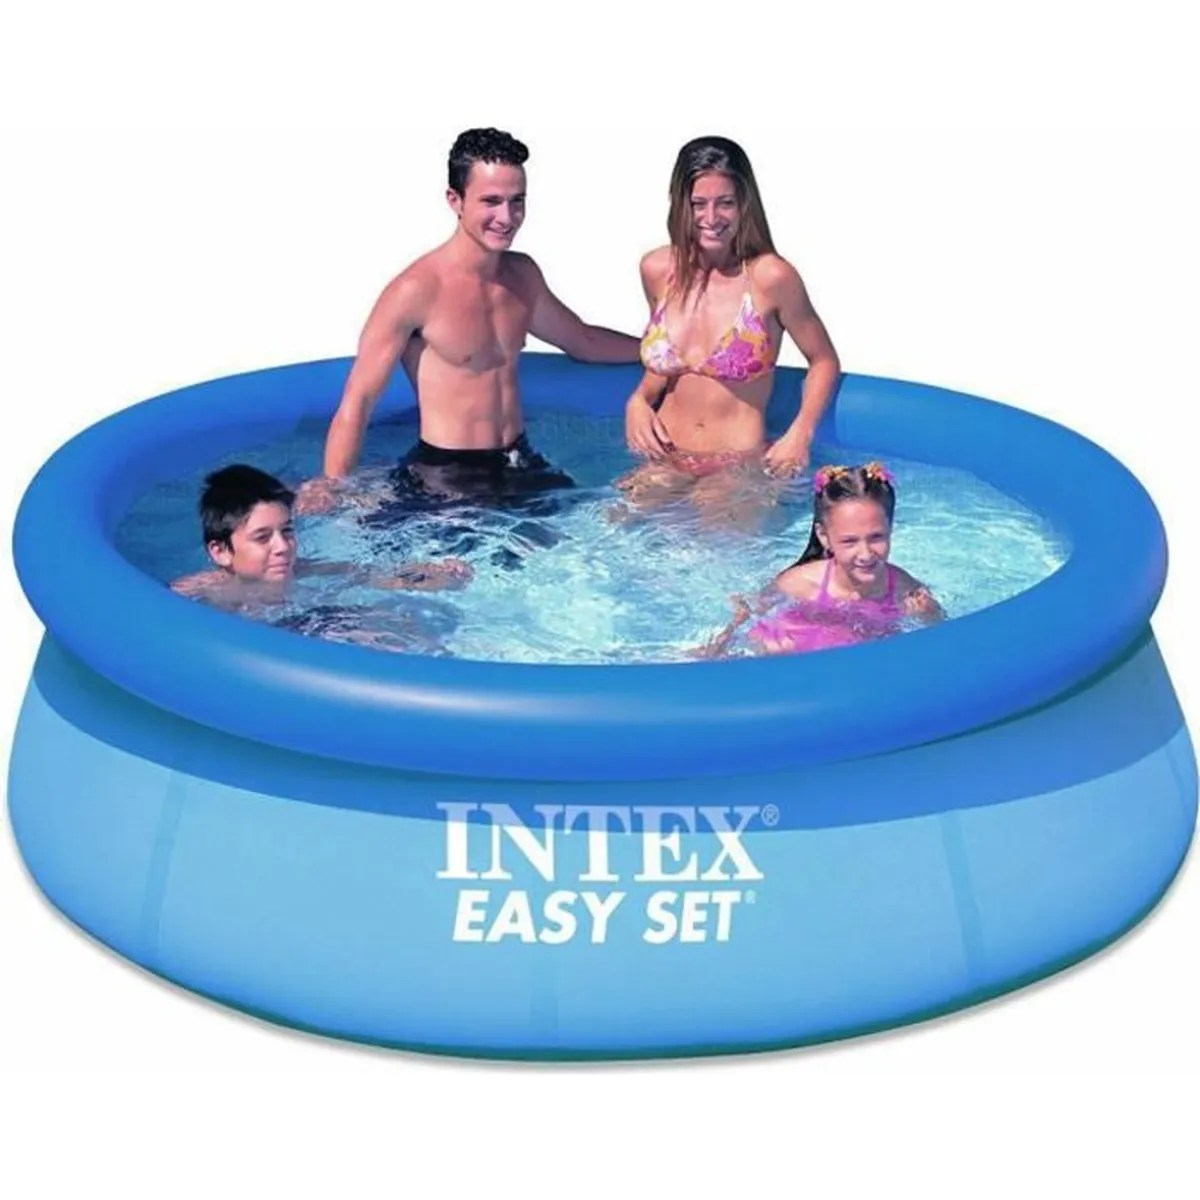 Achat Piscine Intex Piscine Autoportée Intex Easy Set 183 X 51 Cm Achat